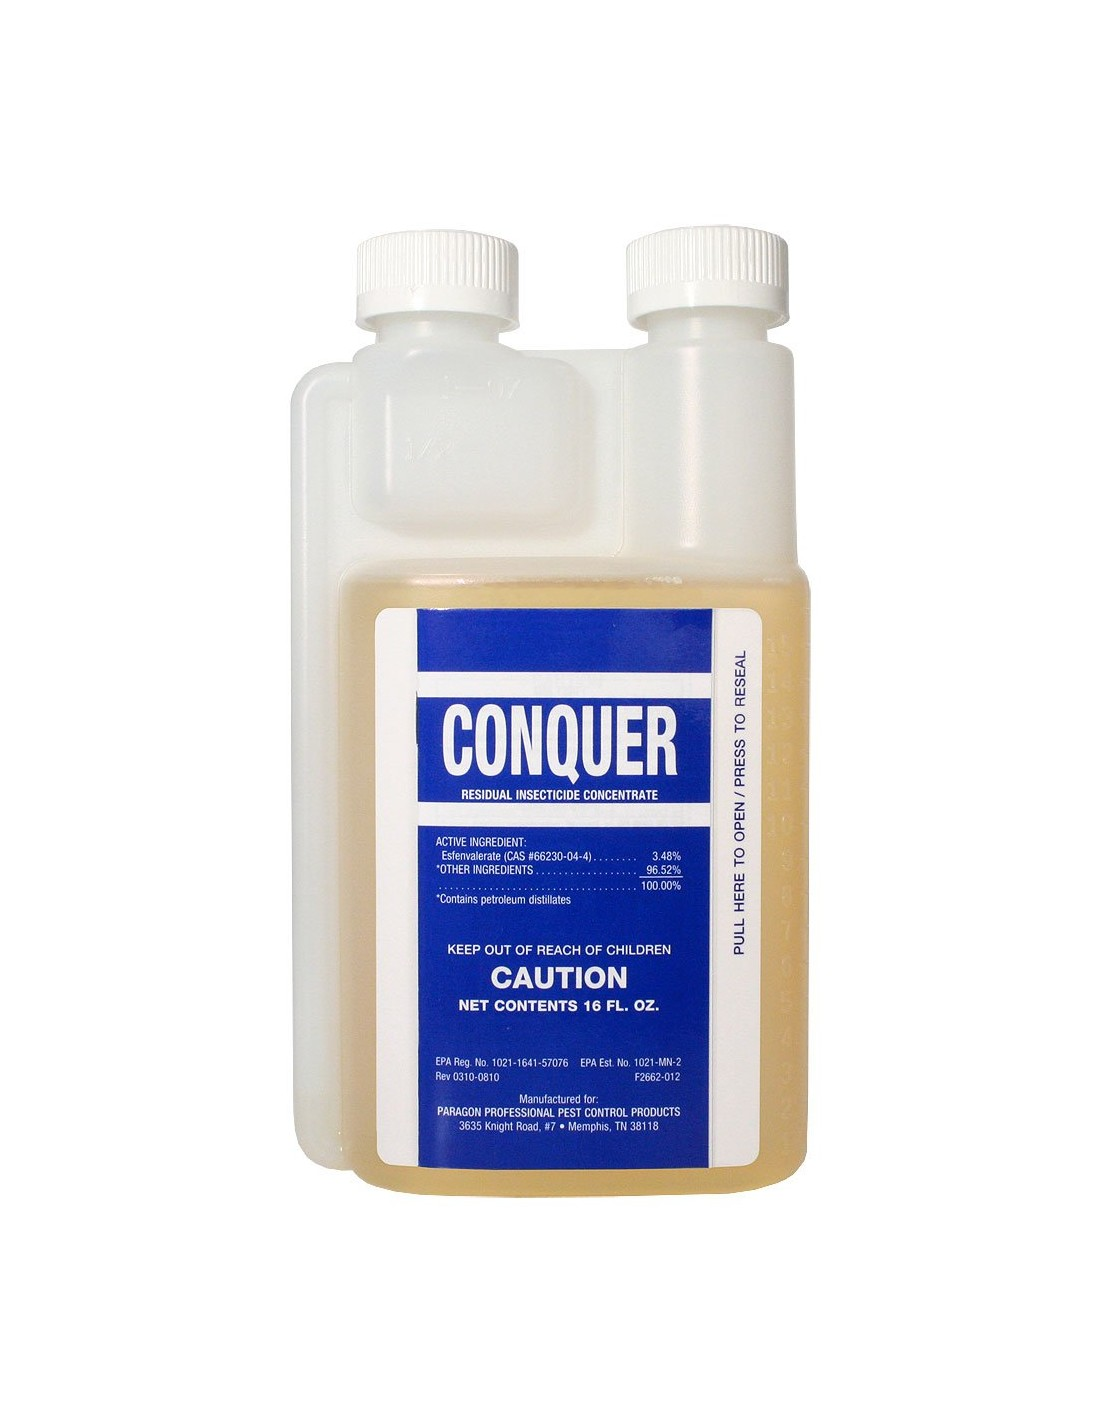 How long do you gave to use conquer after its mixed